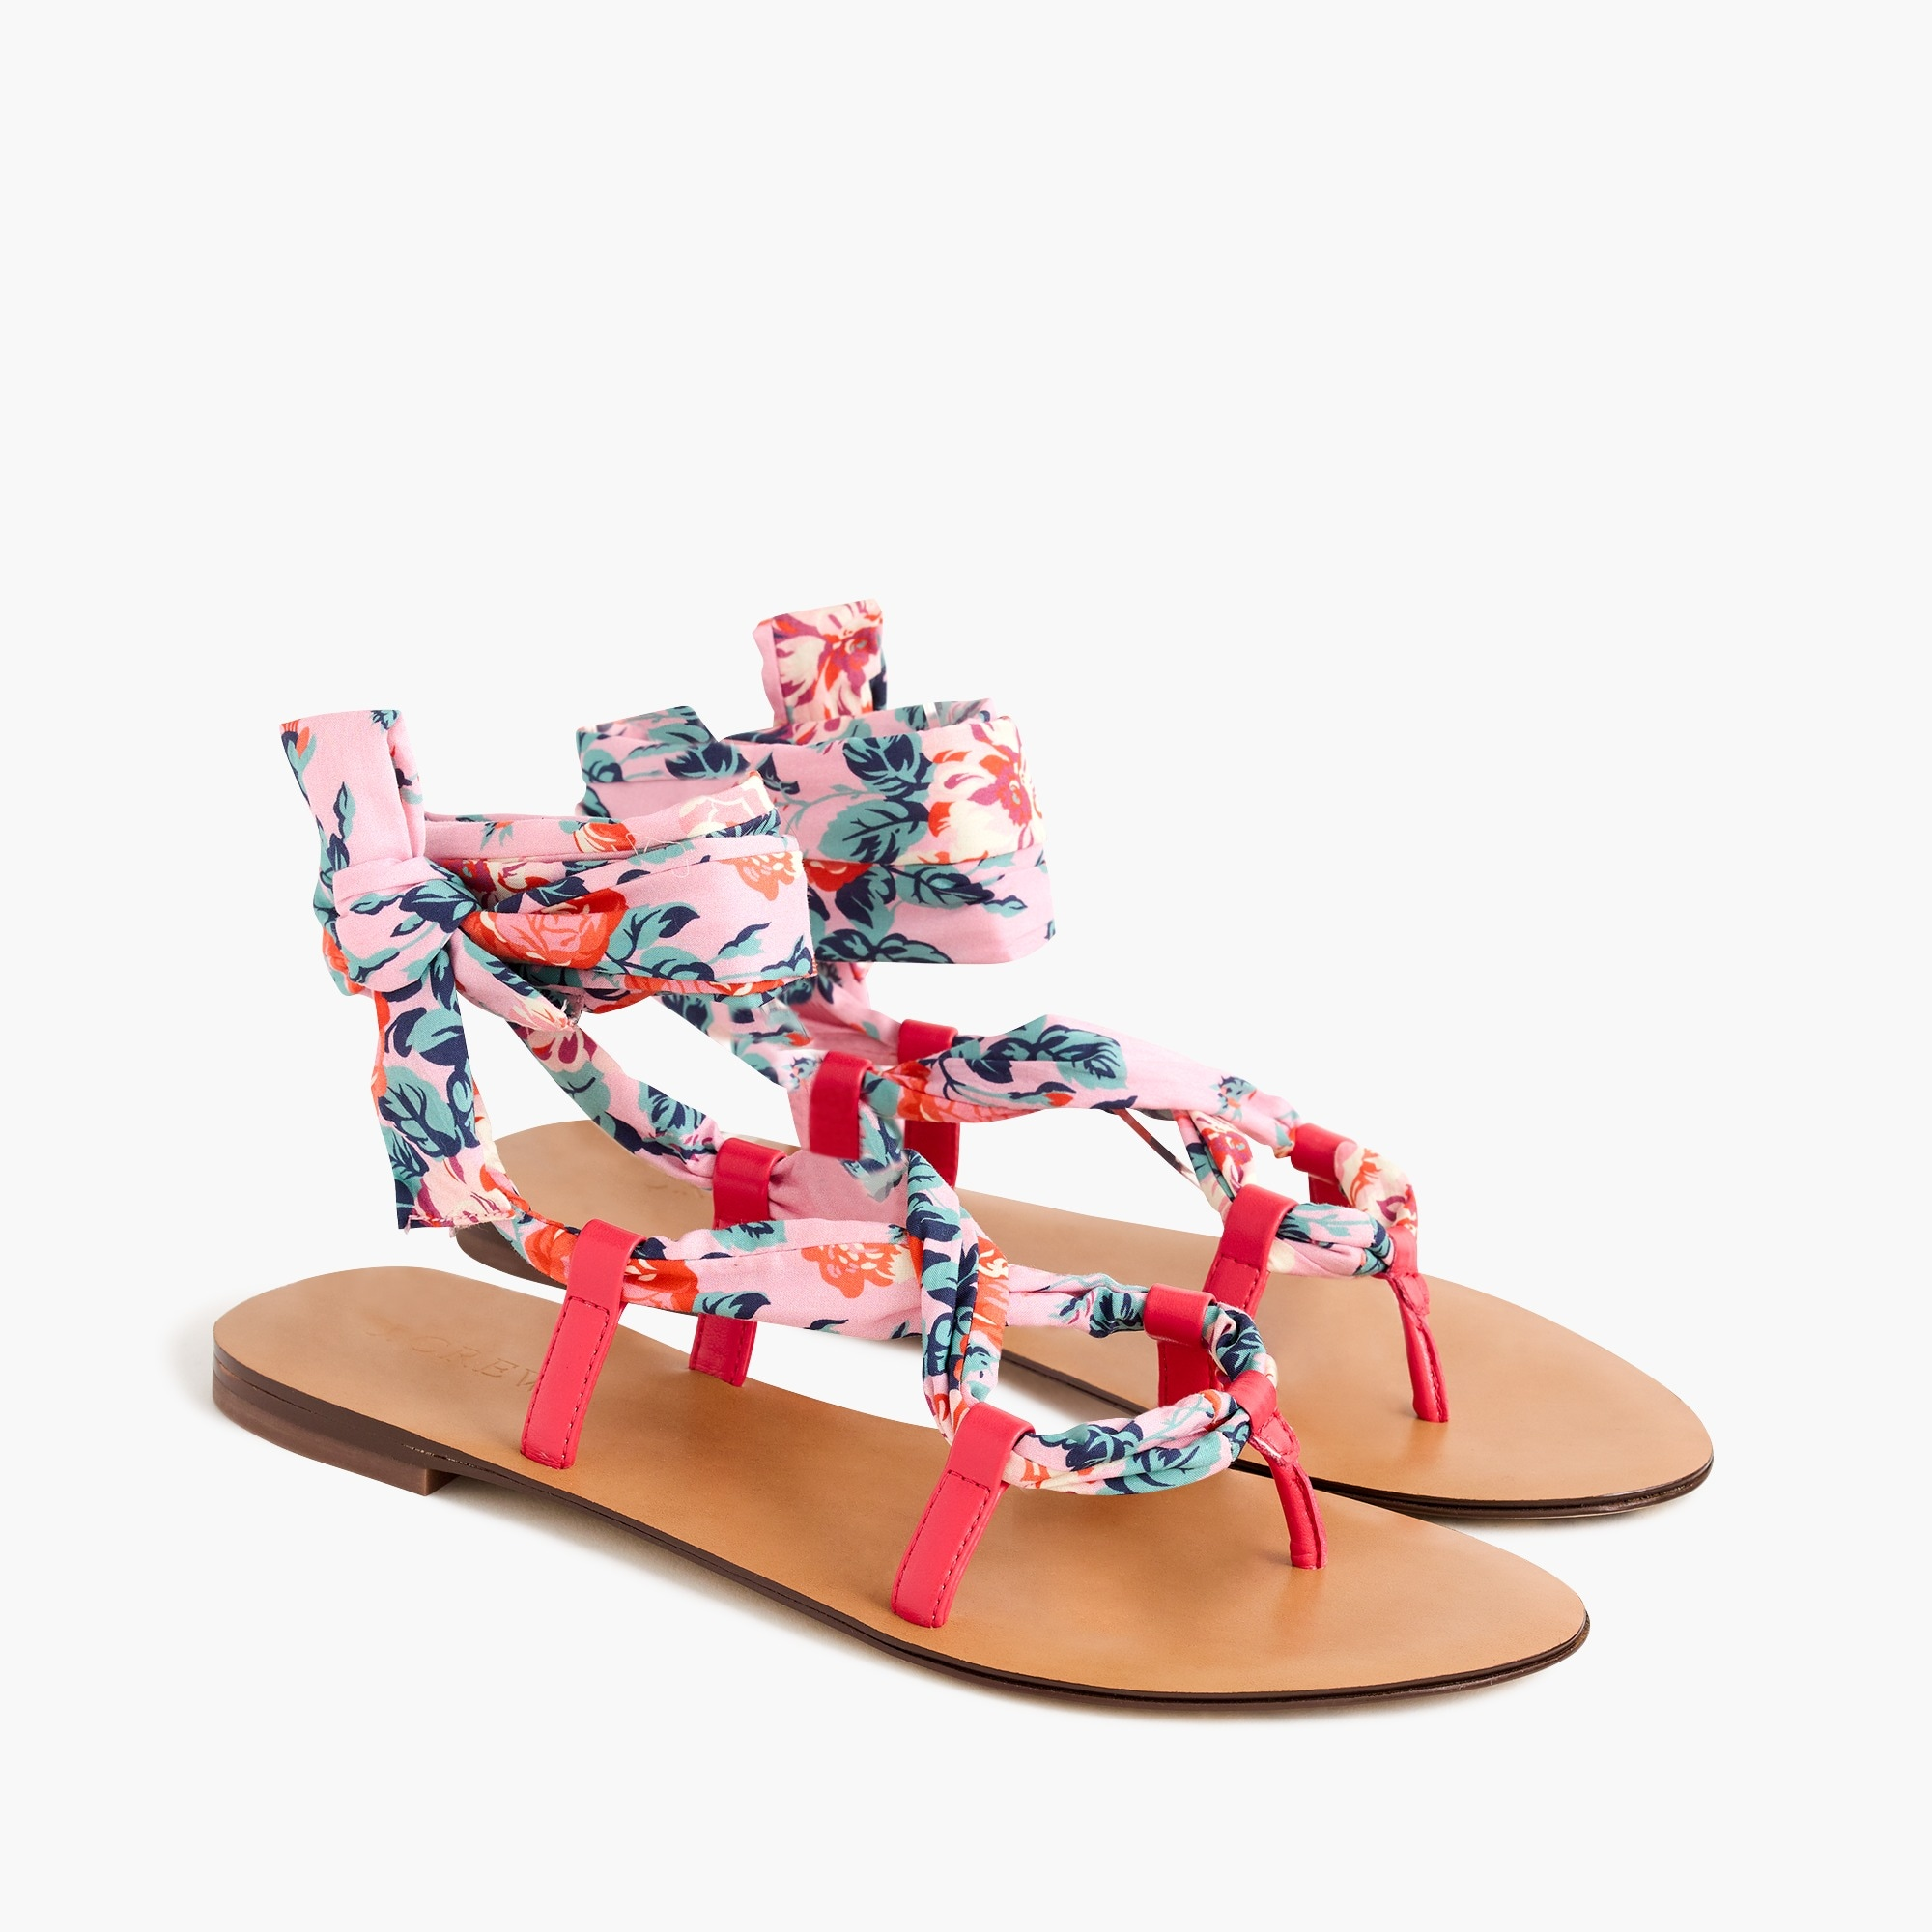 Wrap-around sandals in Liberty® floral women new arrivals c